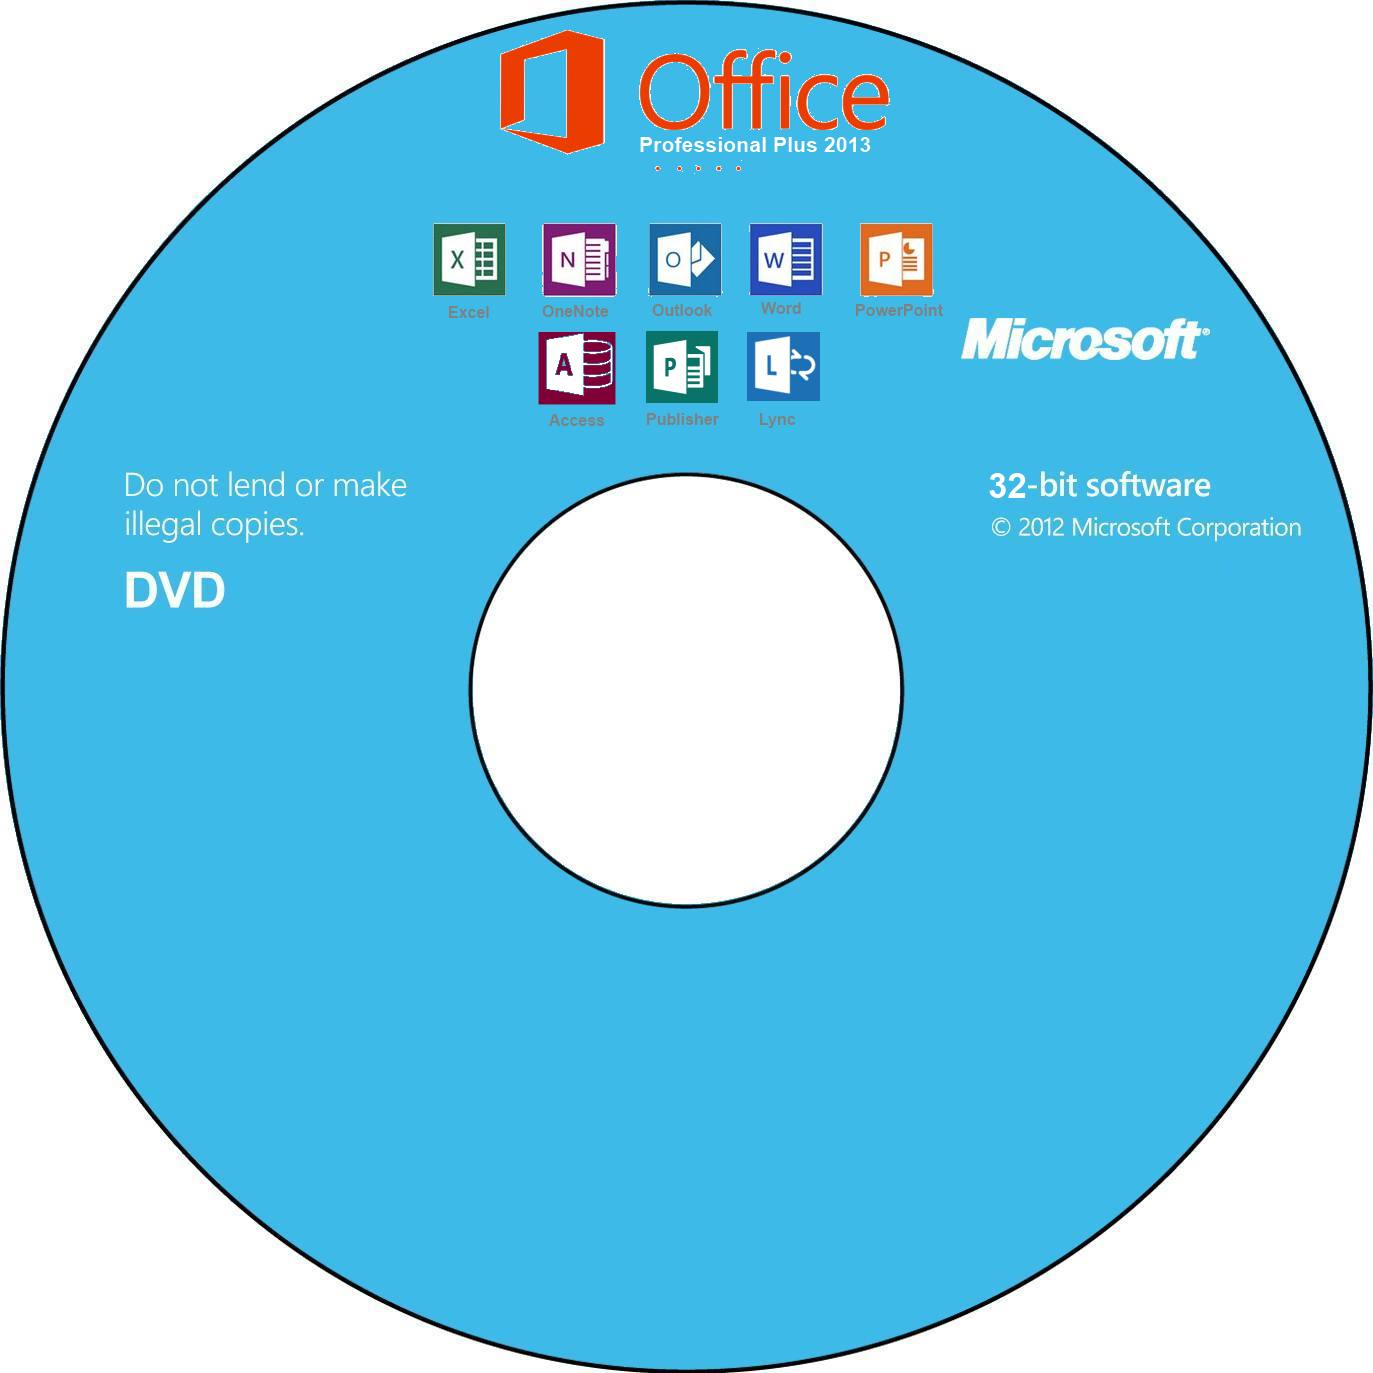 Office 2010 Pro Plus Office Professional Plus 2013 World Wide Game Studio